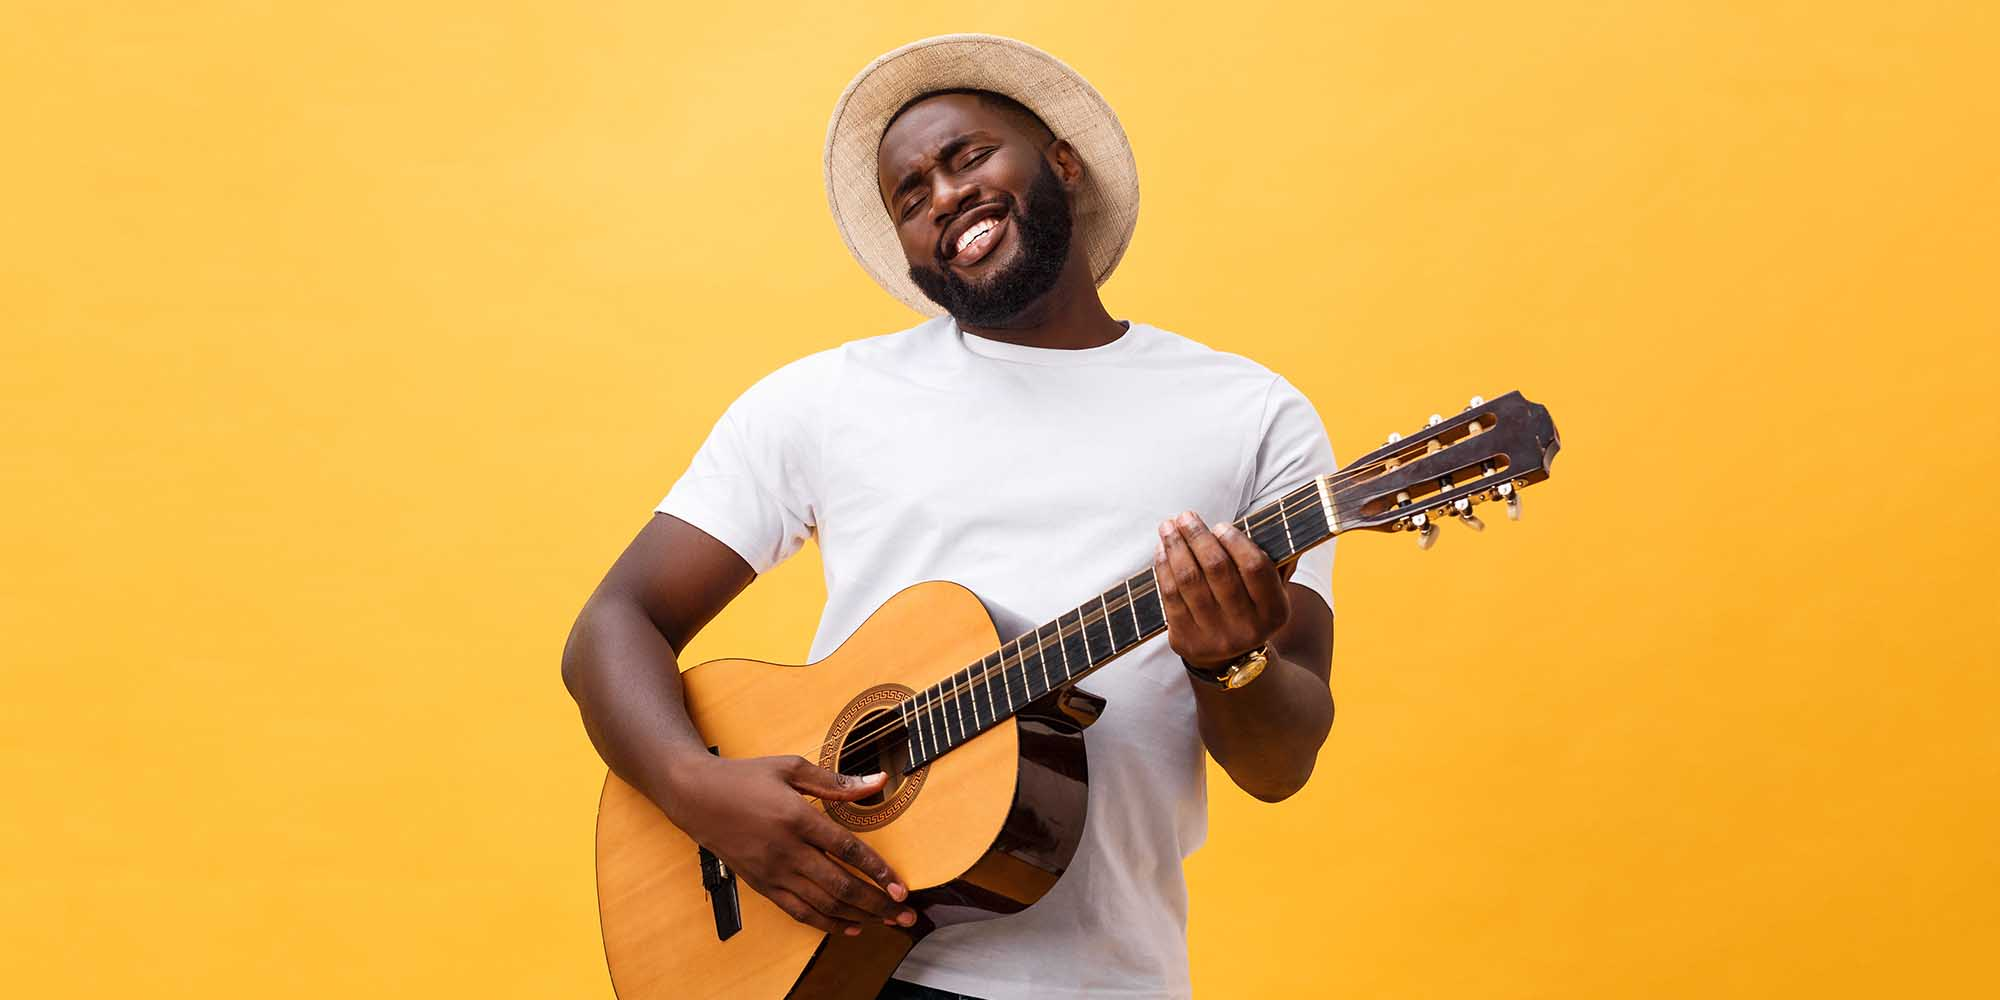 man playing acoustic classical guitar in from of yellow background wearing hat